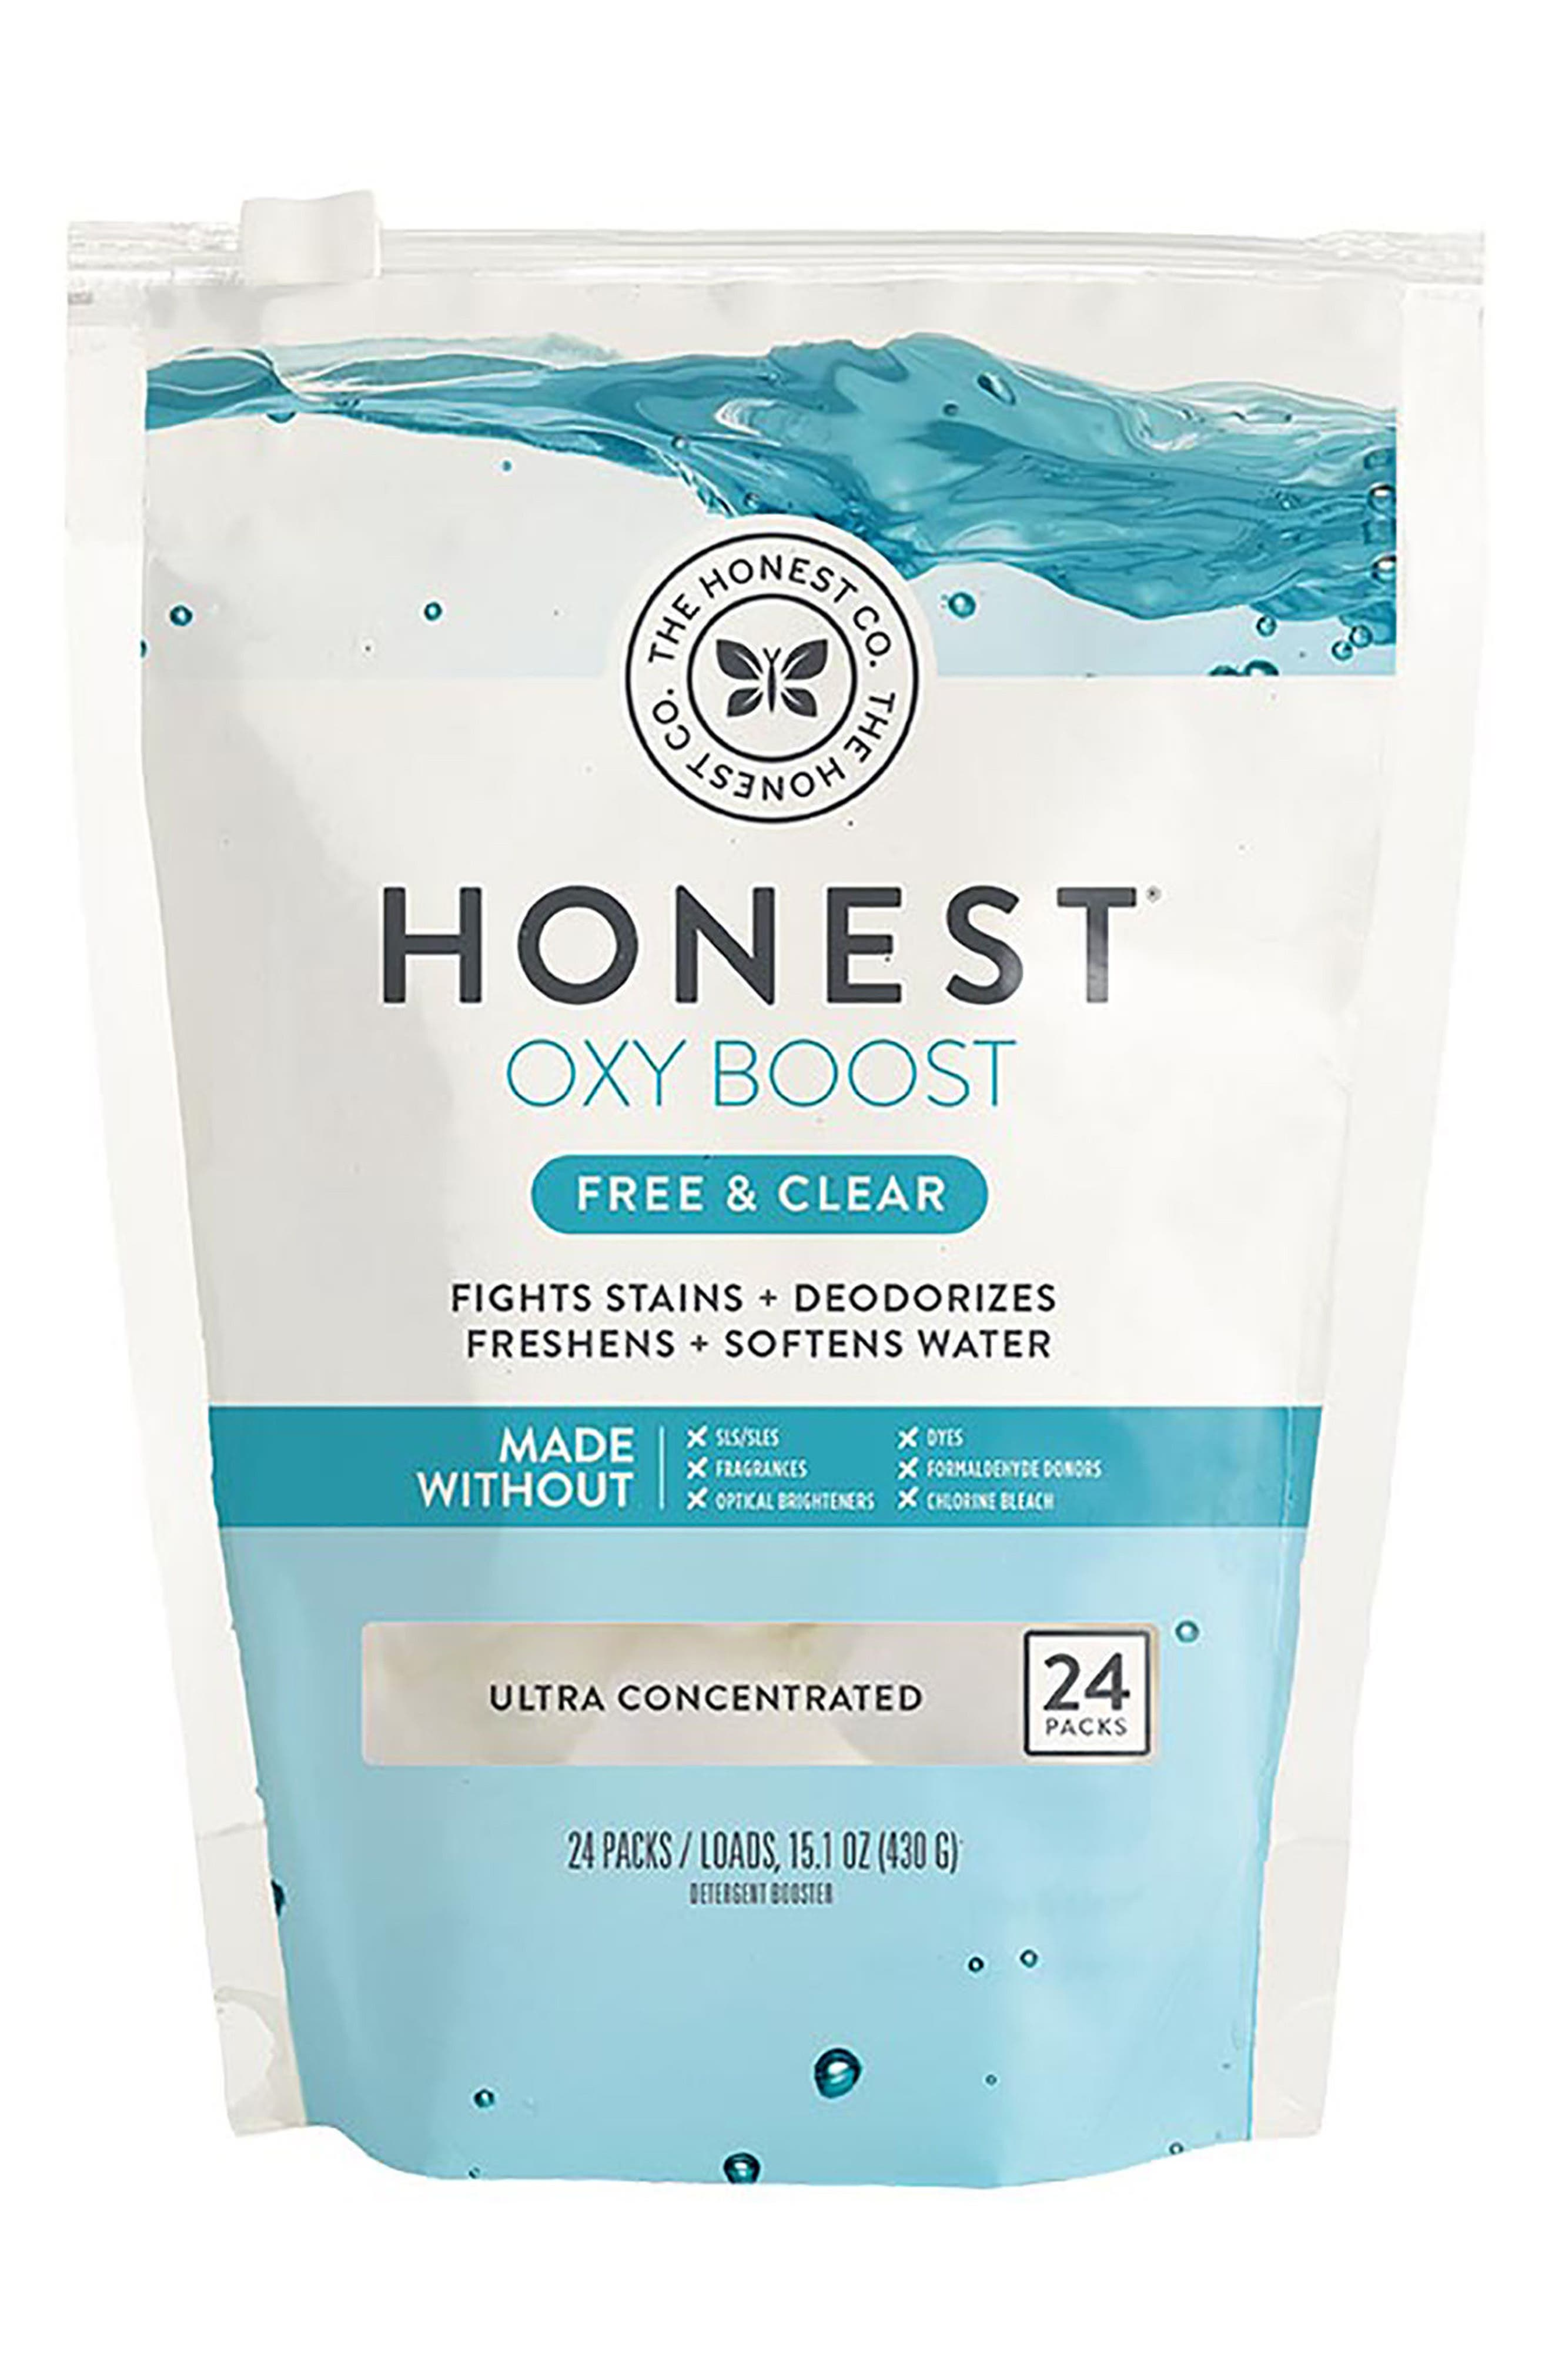 The Honest Company Free & Clear Oxy Boost Detergent Booster